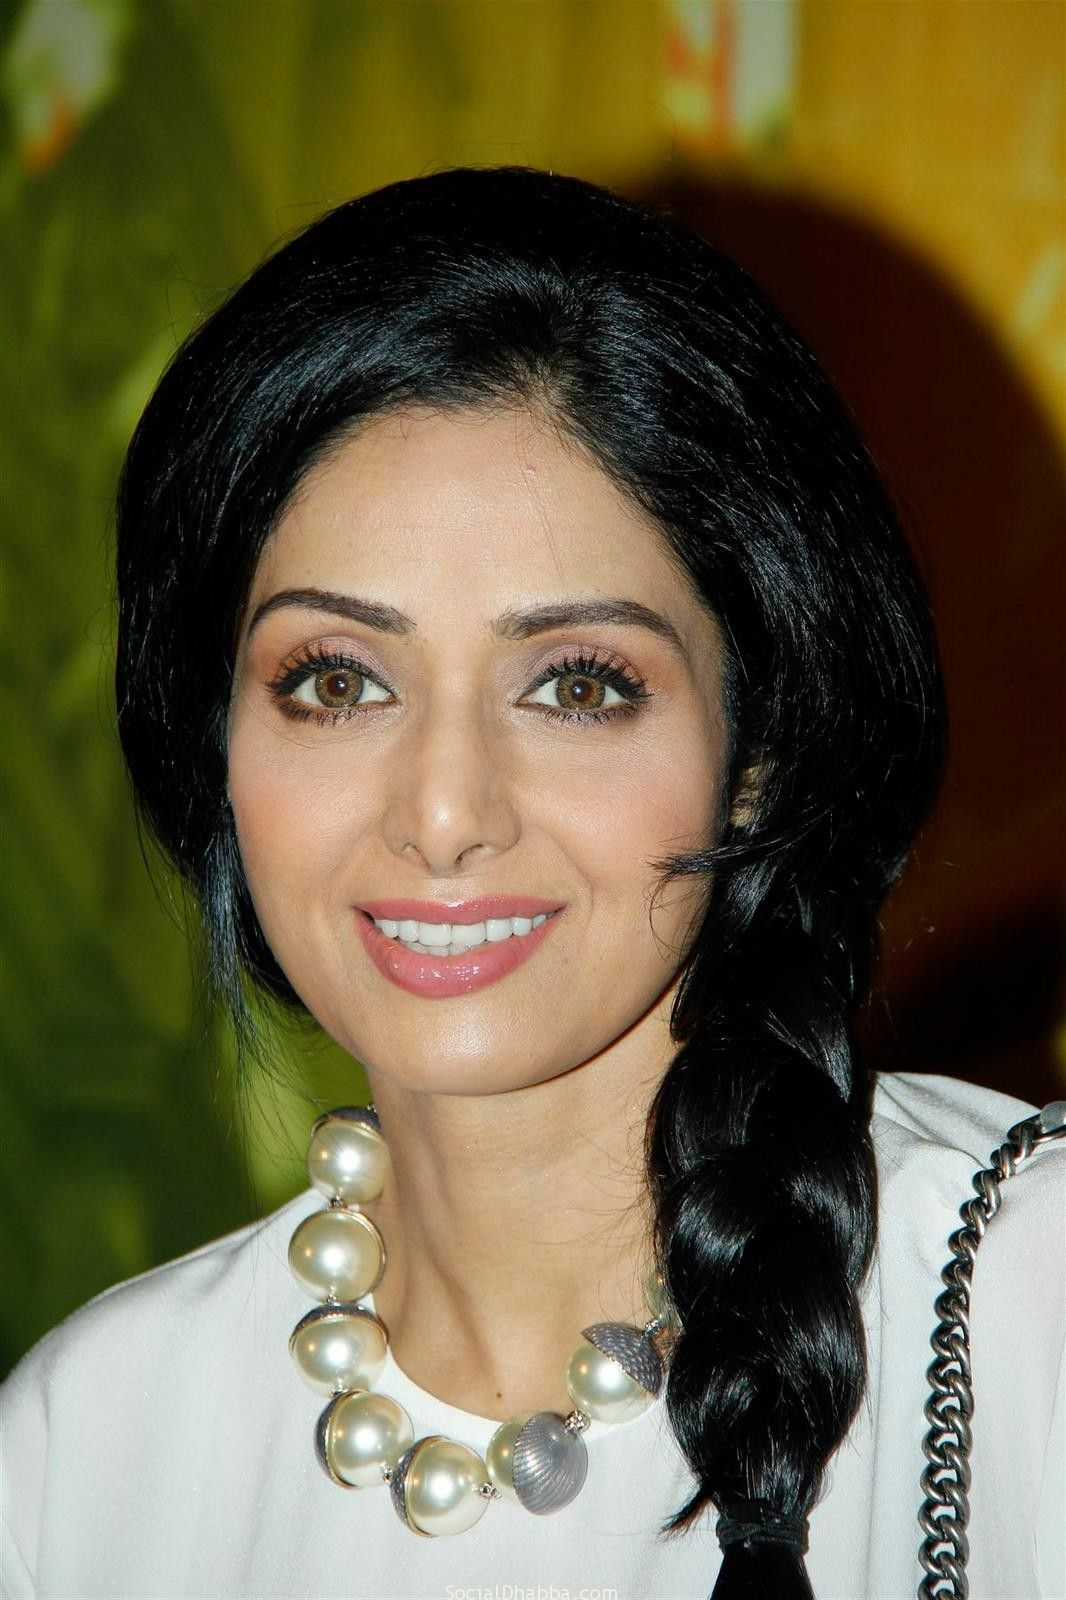 sridevi family photosridevi daughter, sridevi kapoor, sridevi seks, sridevi janam meri janam, sridevi film, sridevi mp3, sridevi wiki, sridevi nrithyalaya, sridevi 2017, sridevi nagina, sridevi wikipedia, sridevi kalakaar, sridevi boney kapoor, sridevi chandni film, sridevi facebook, sridevi family photo, sridevi cashew industries, sridevi mom, sridevi interview 2016, sridevi film english vinglish